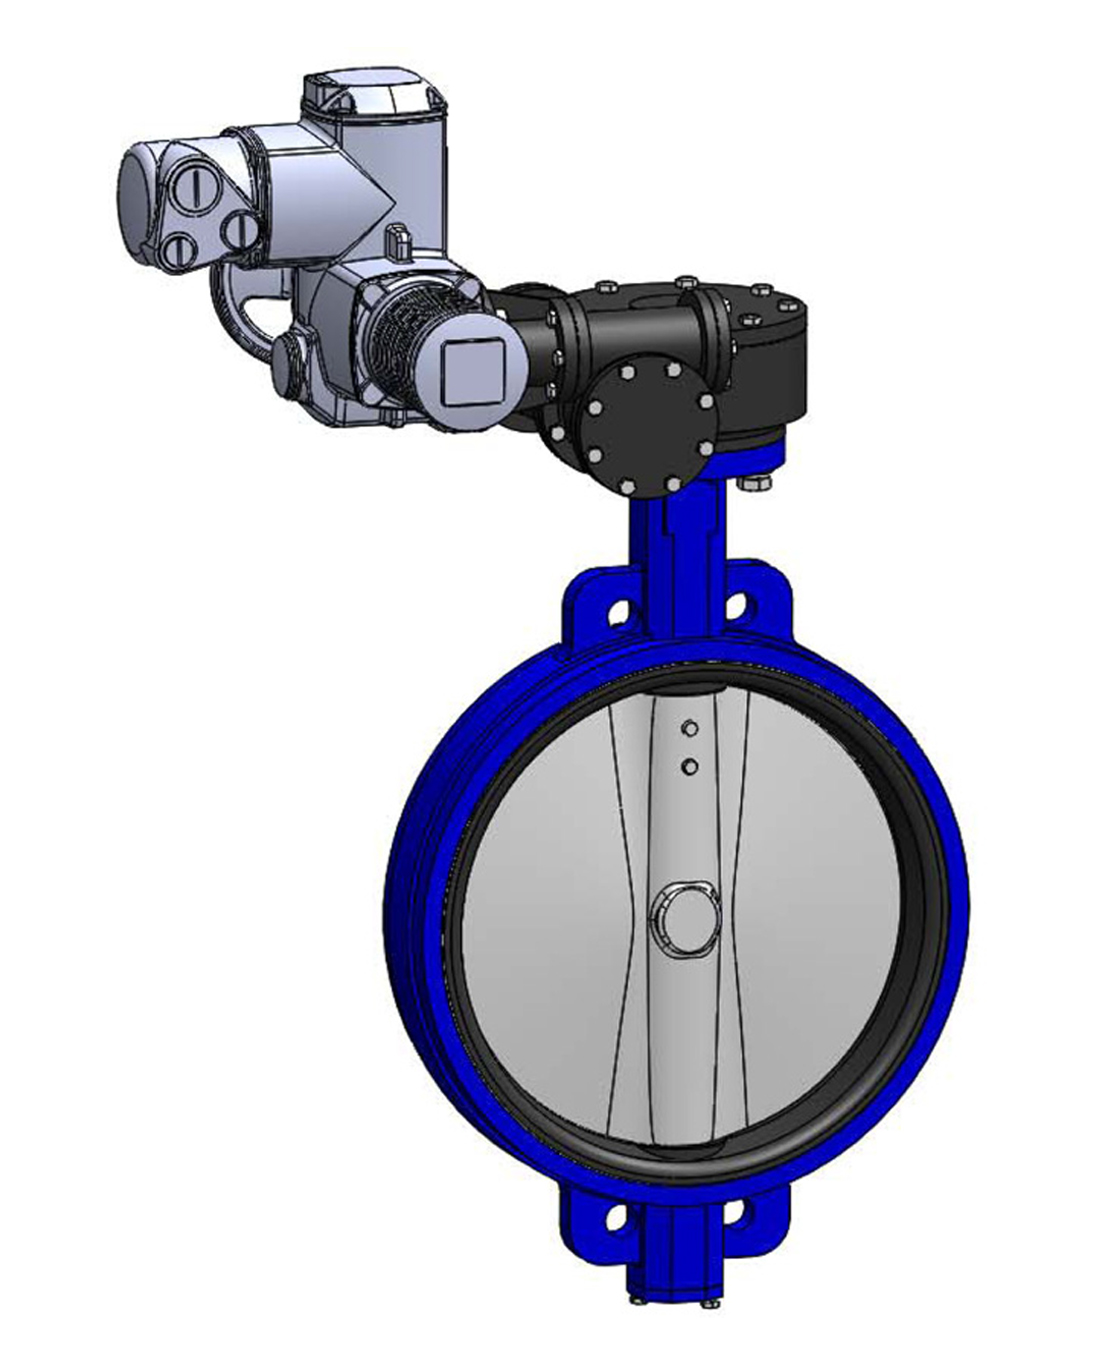 Wafer type butterfly valve PN10 – ductile iron body – stainless steel disc – AUMA electric operator